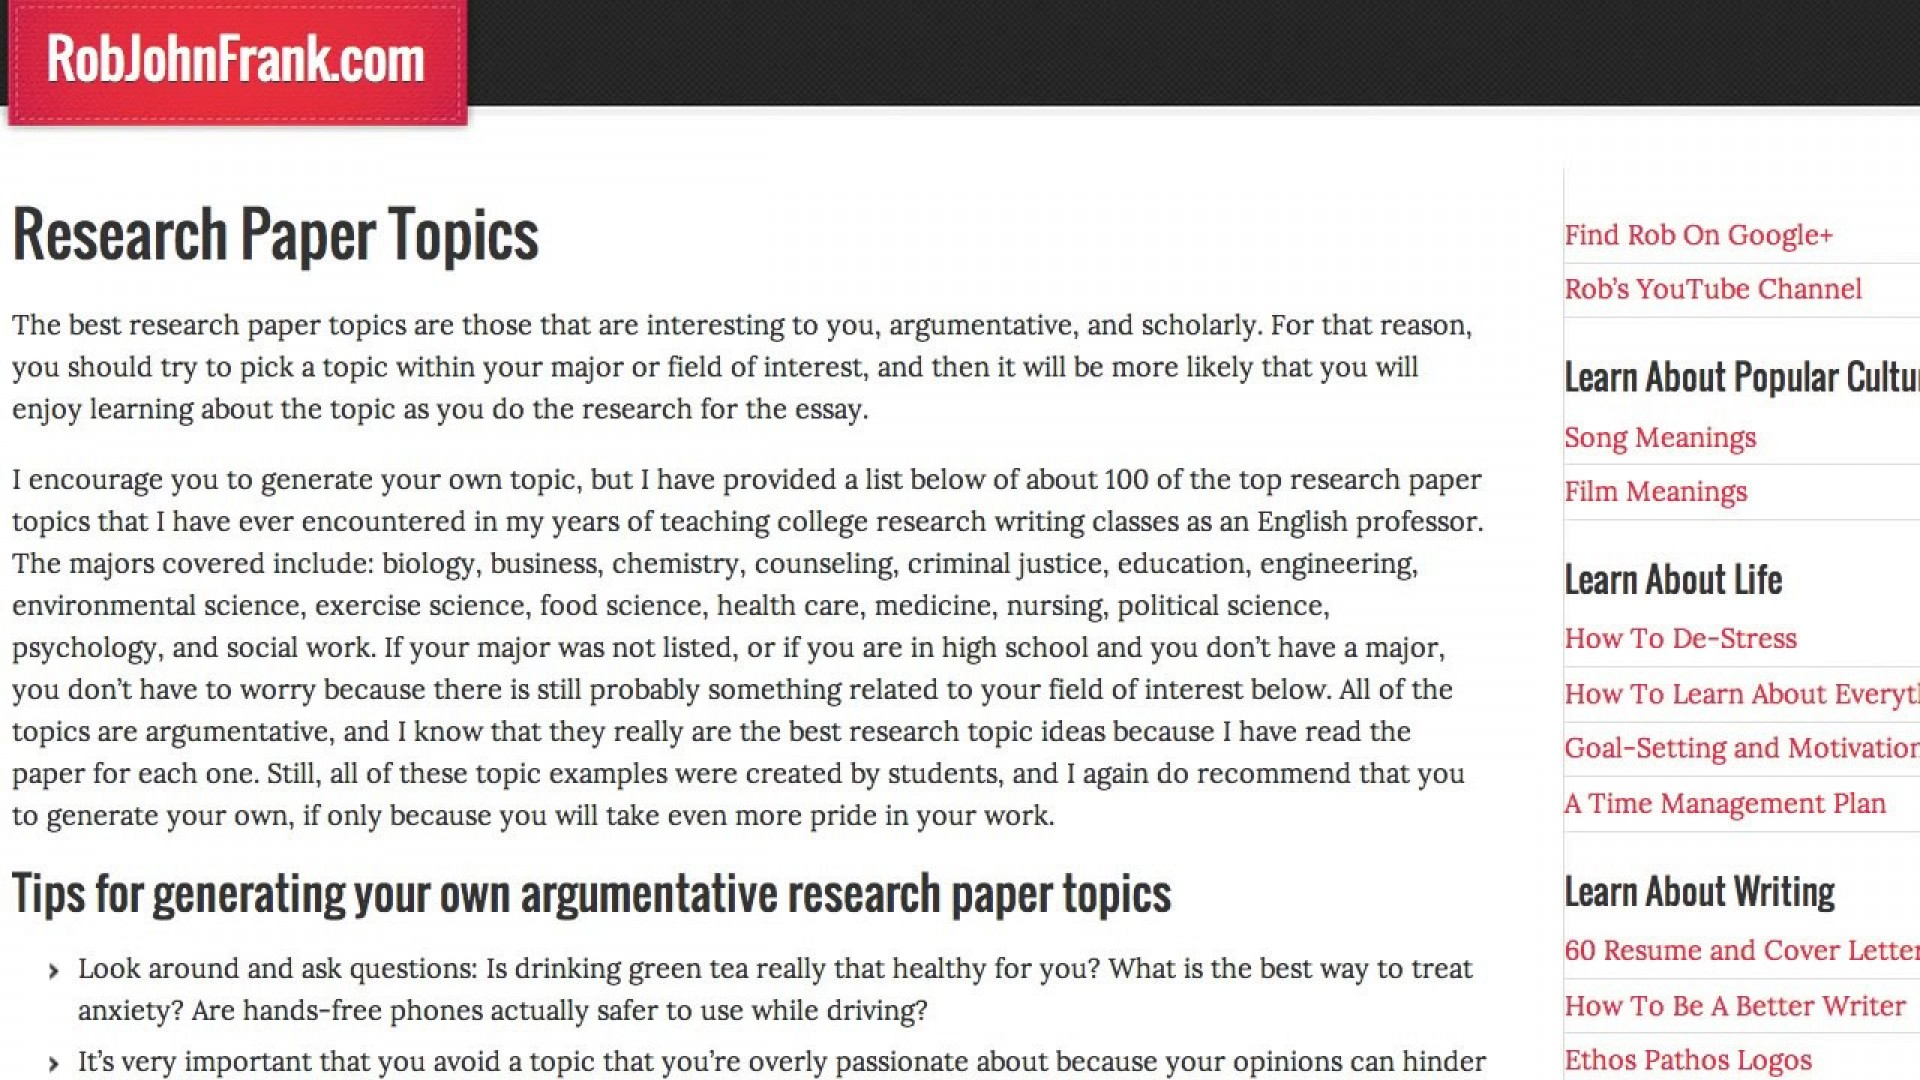 017 Cool Topics To Write Research Paper On Astounding A Interesting Essay Fun Easiest 1920